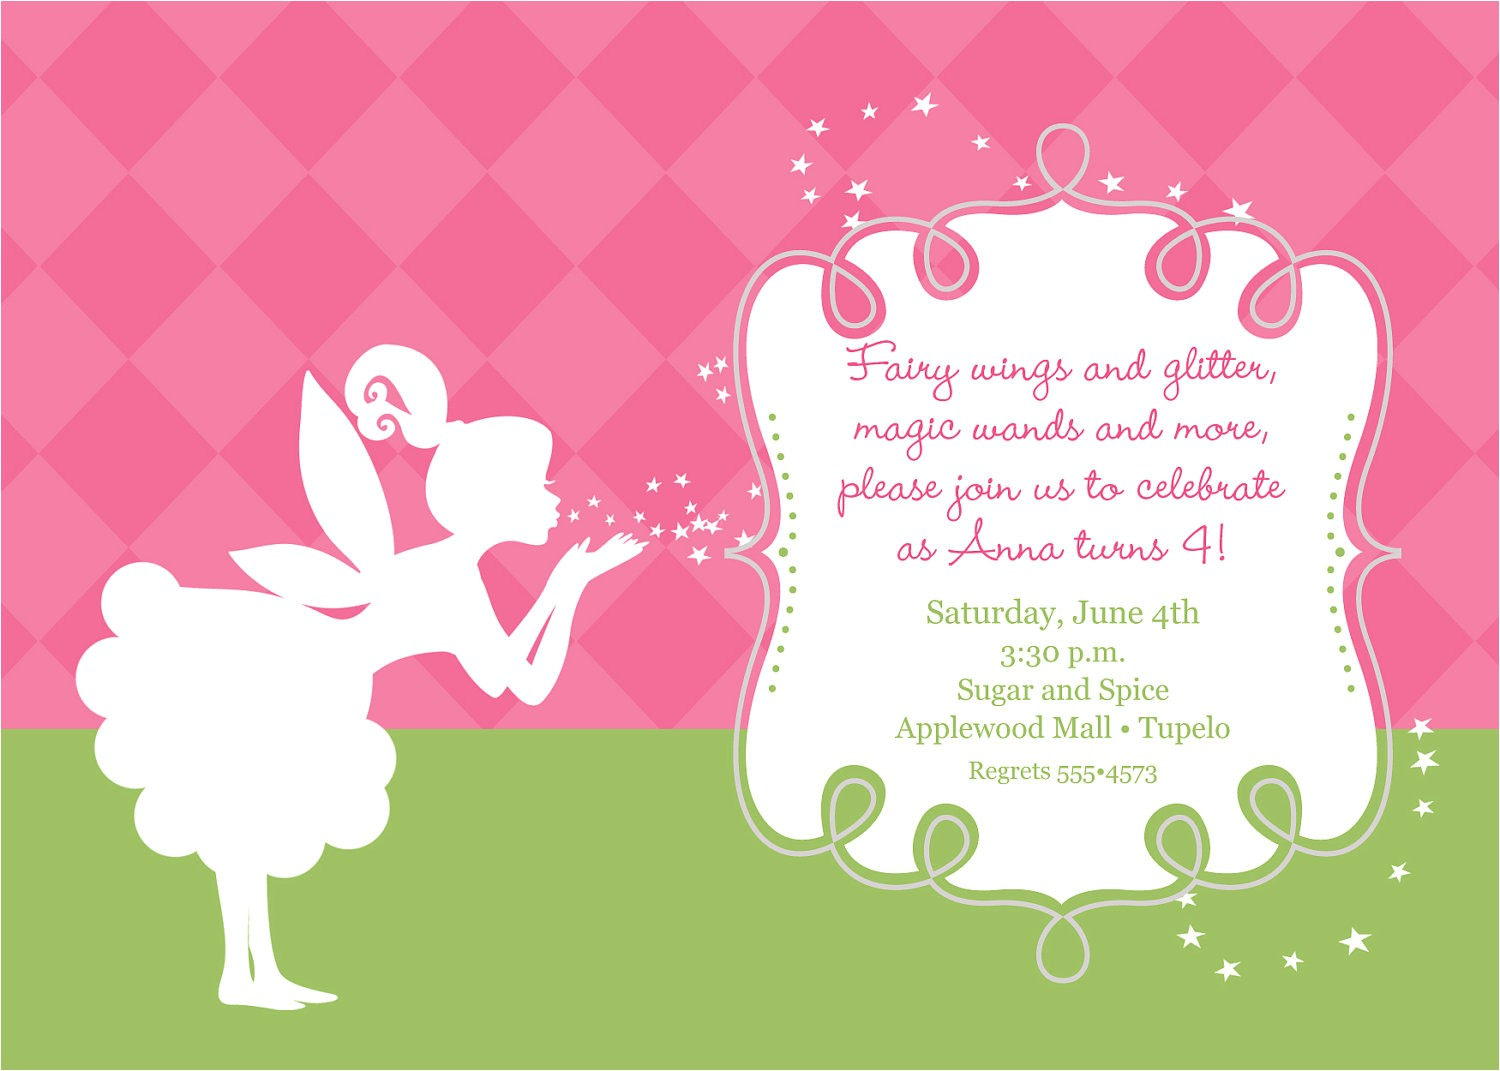 pixies and fairy wings birthday